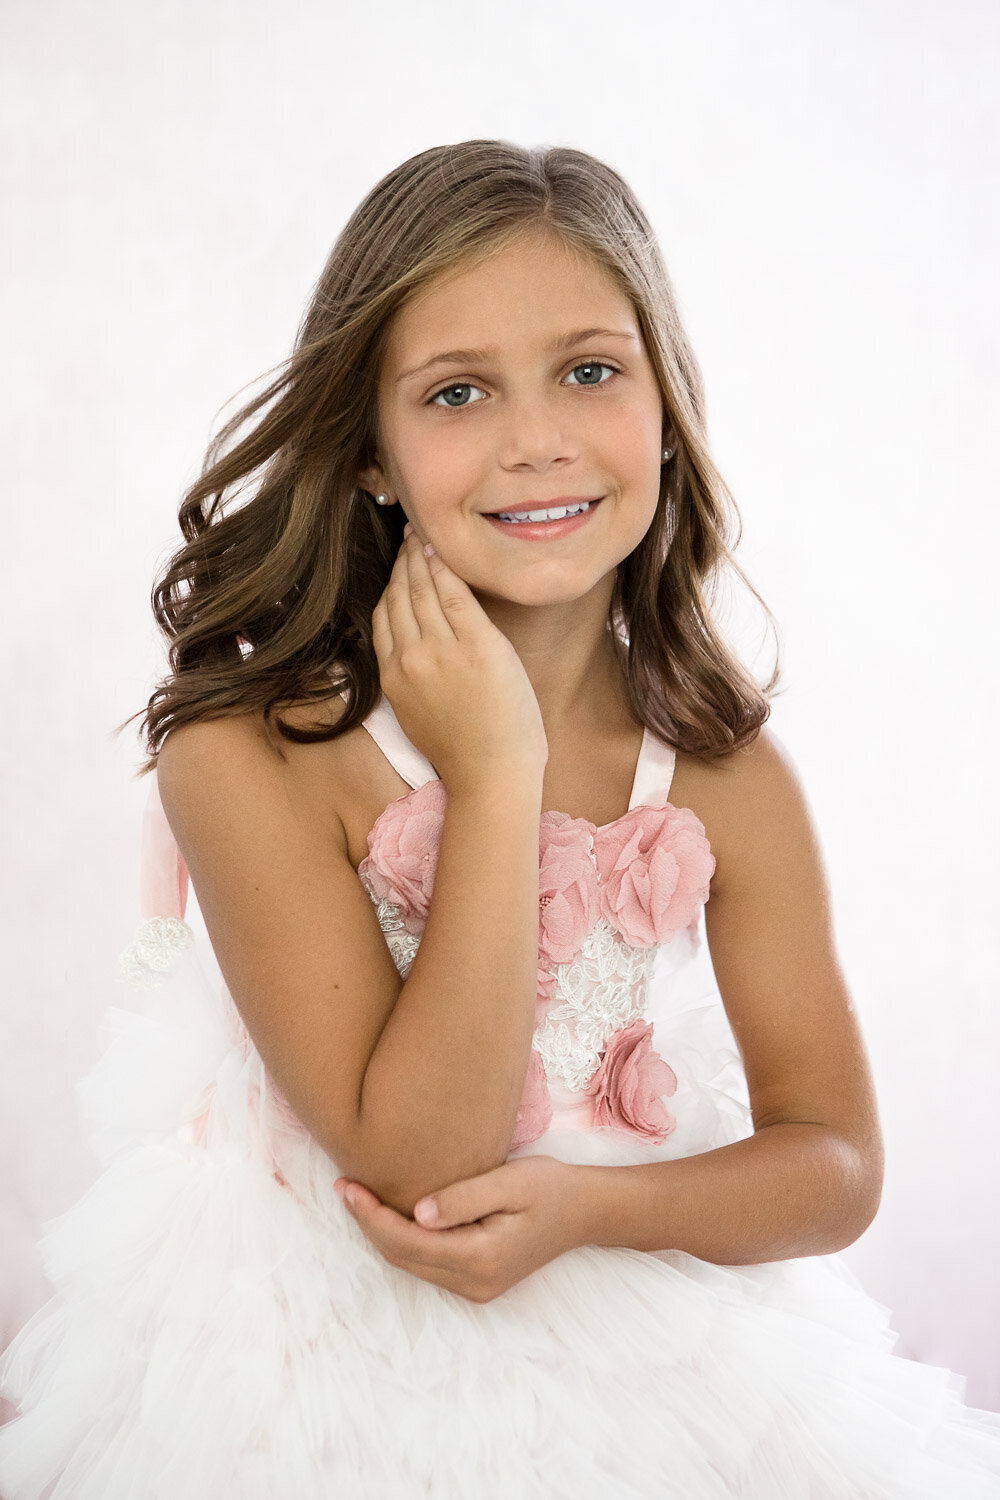 Professional little beauty portrait of girl in Buffalo, New York